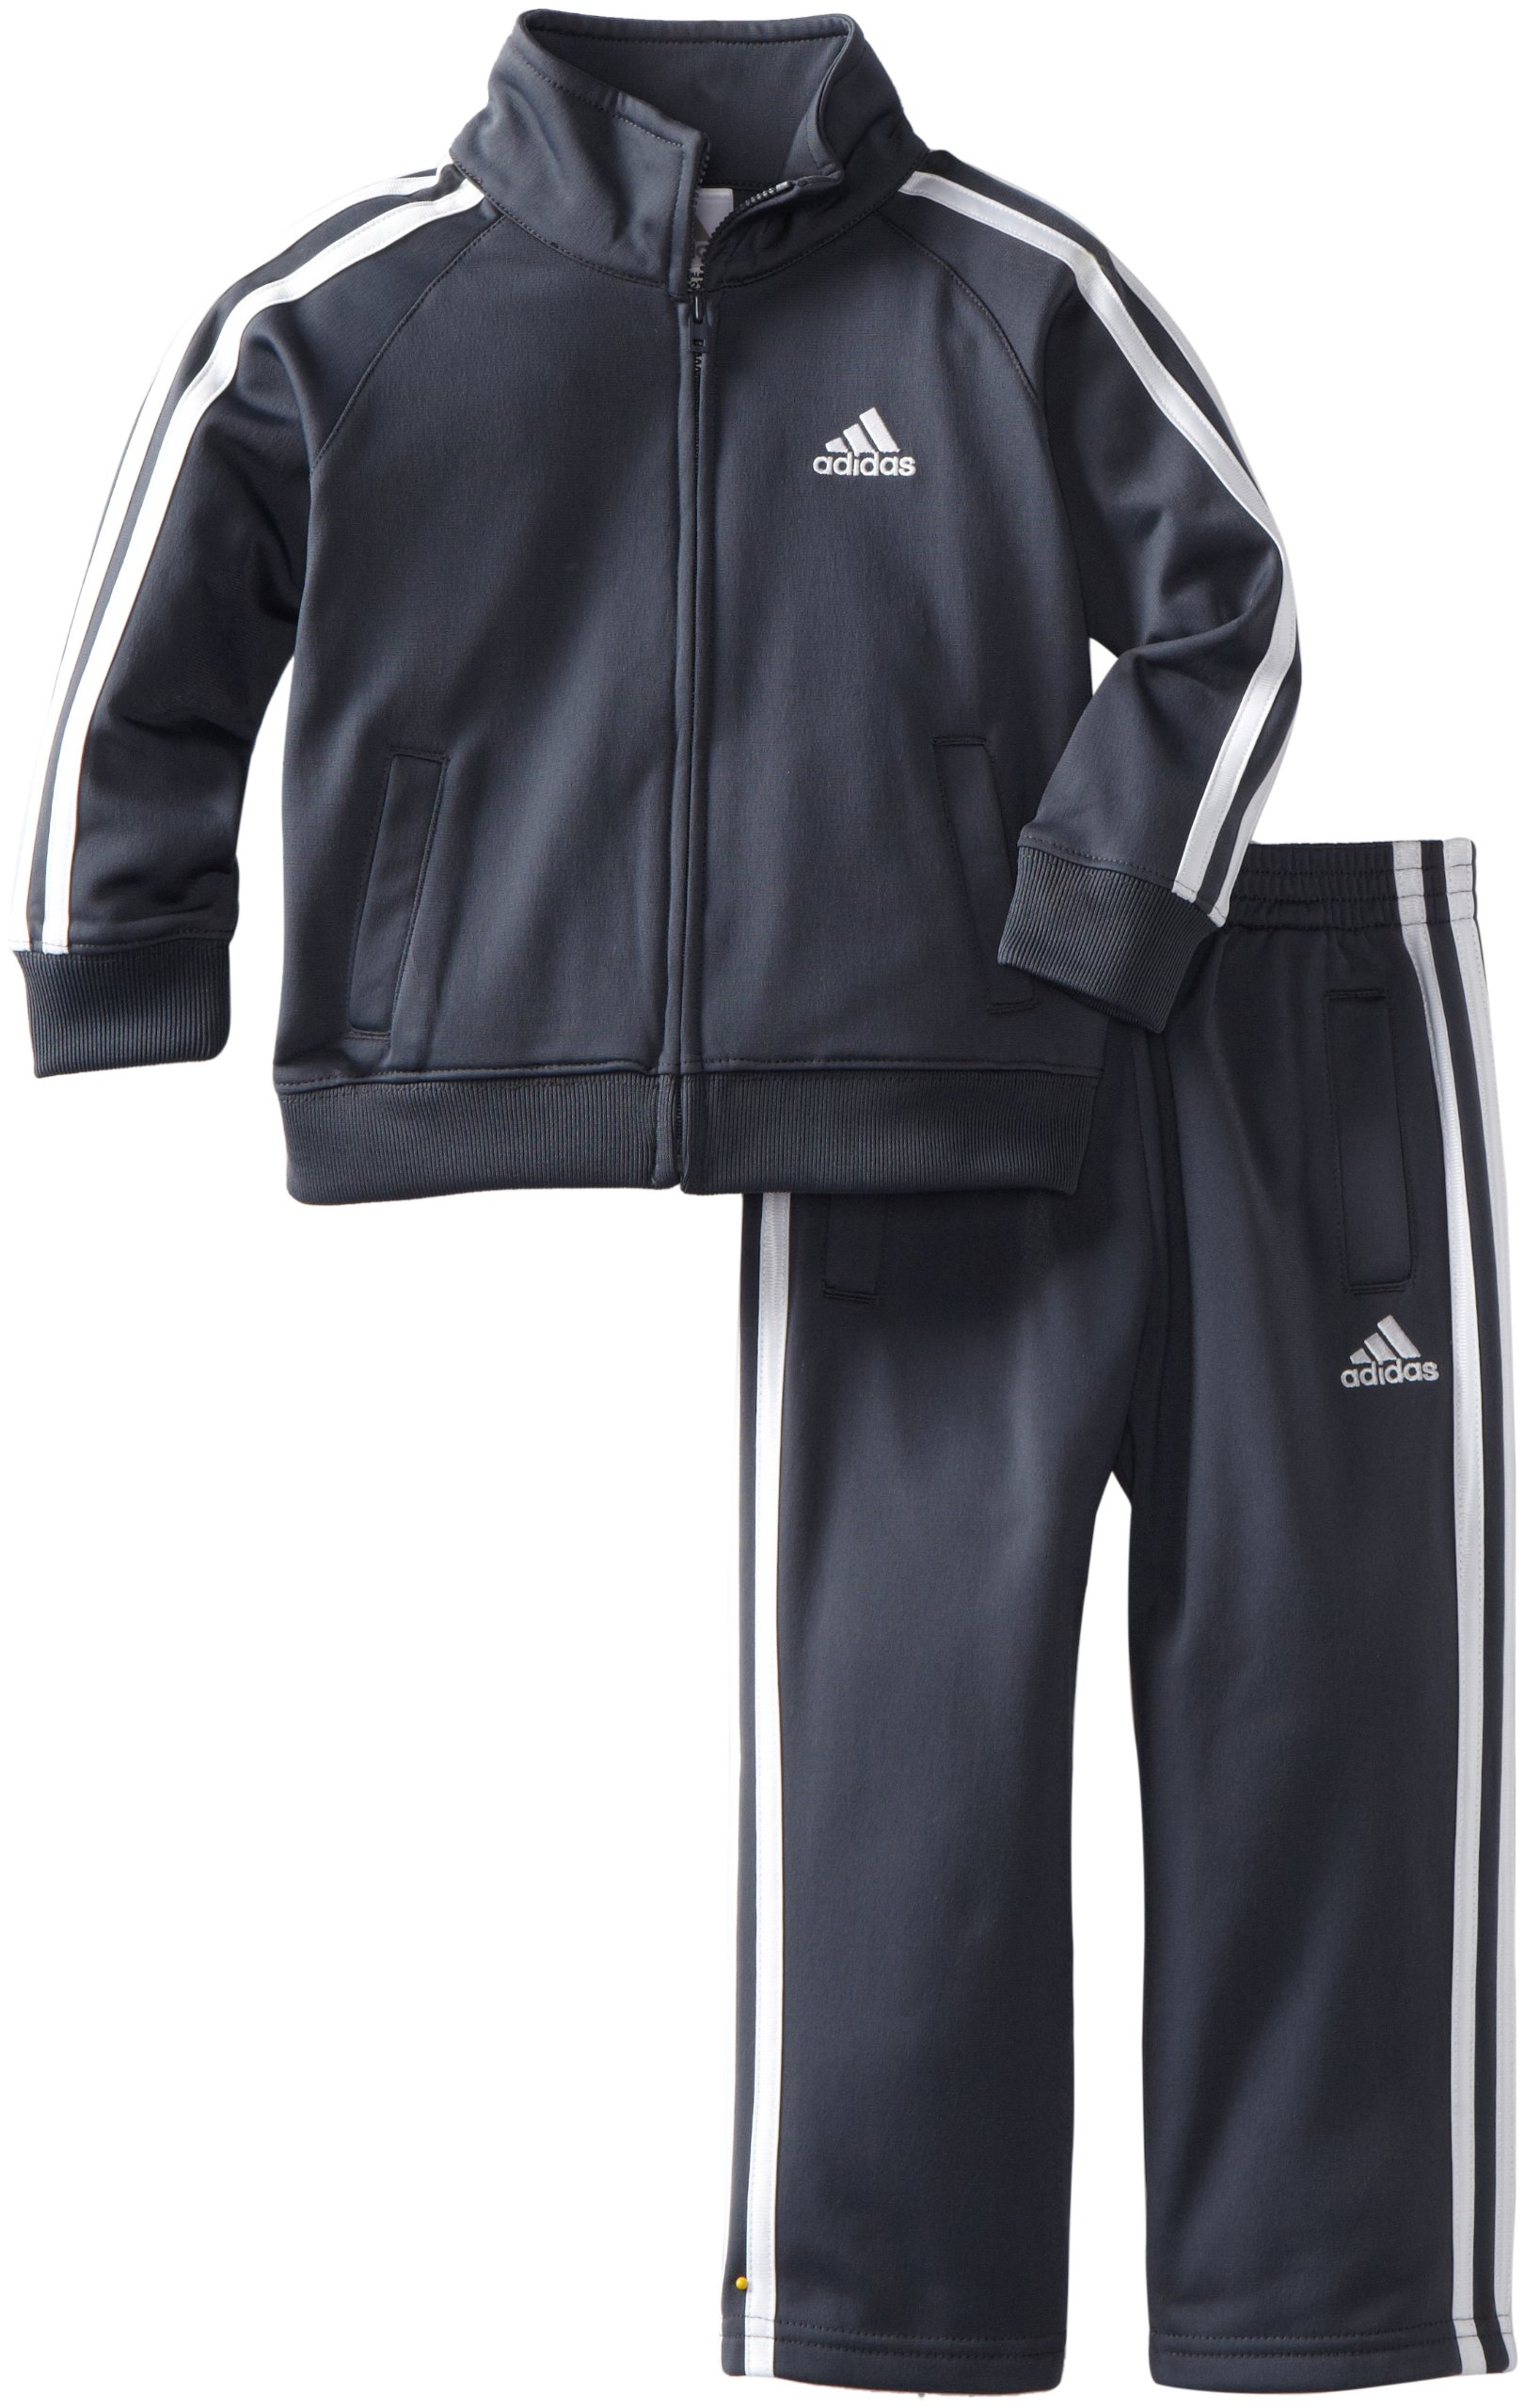 adidas Toddler Boys' Iconic Tricot Jacket and Pant Set, Grey, 4T by adidas